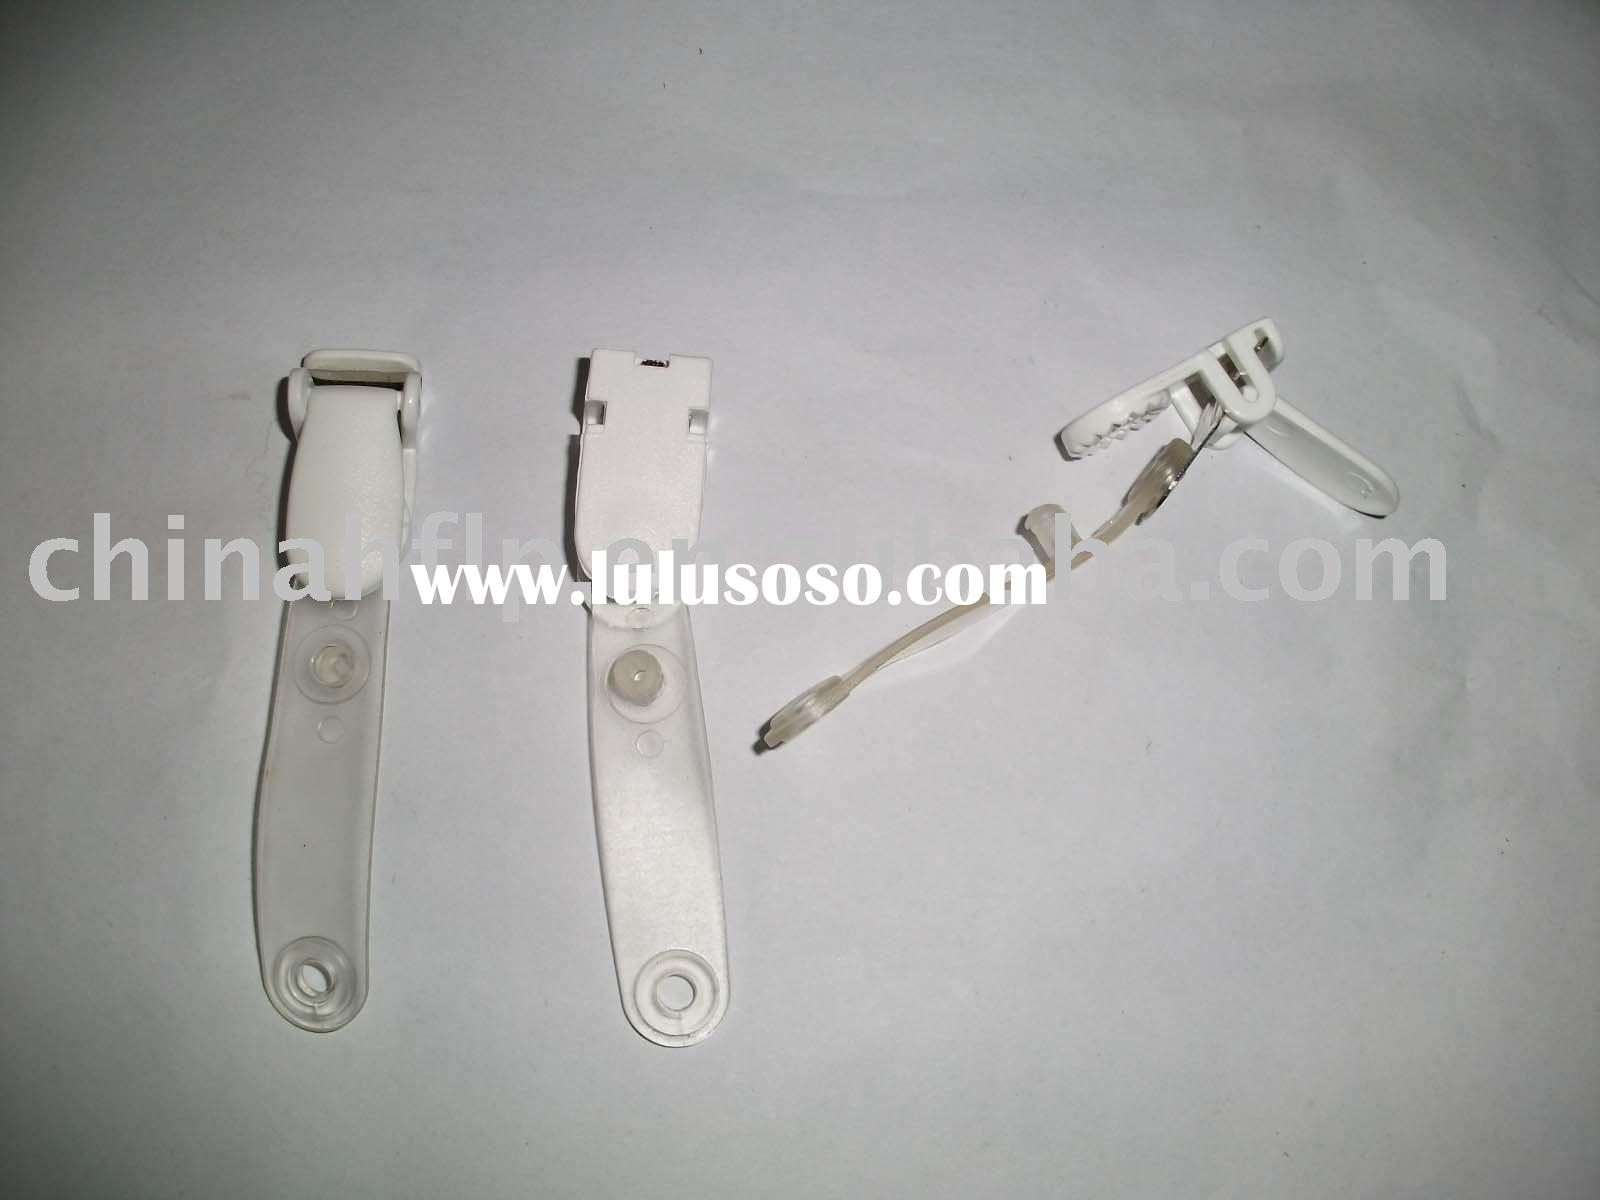 white color plastic name badge clip with plastic holder